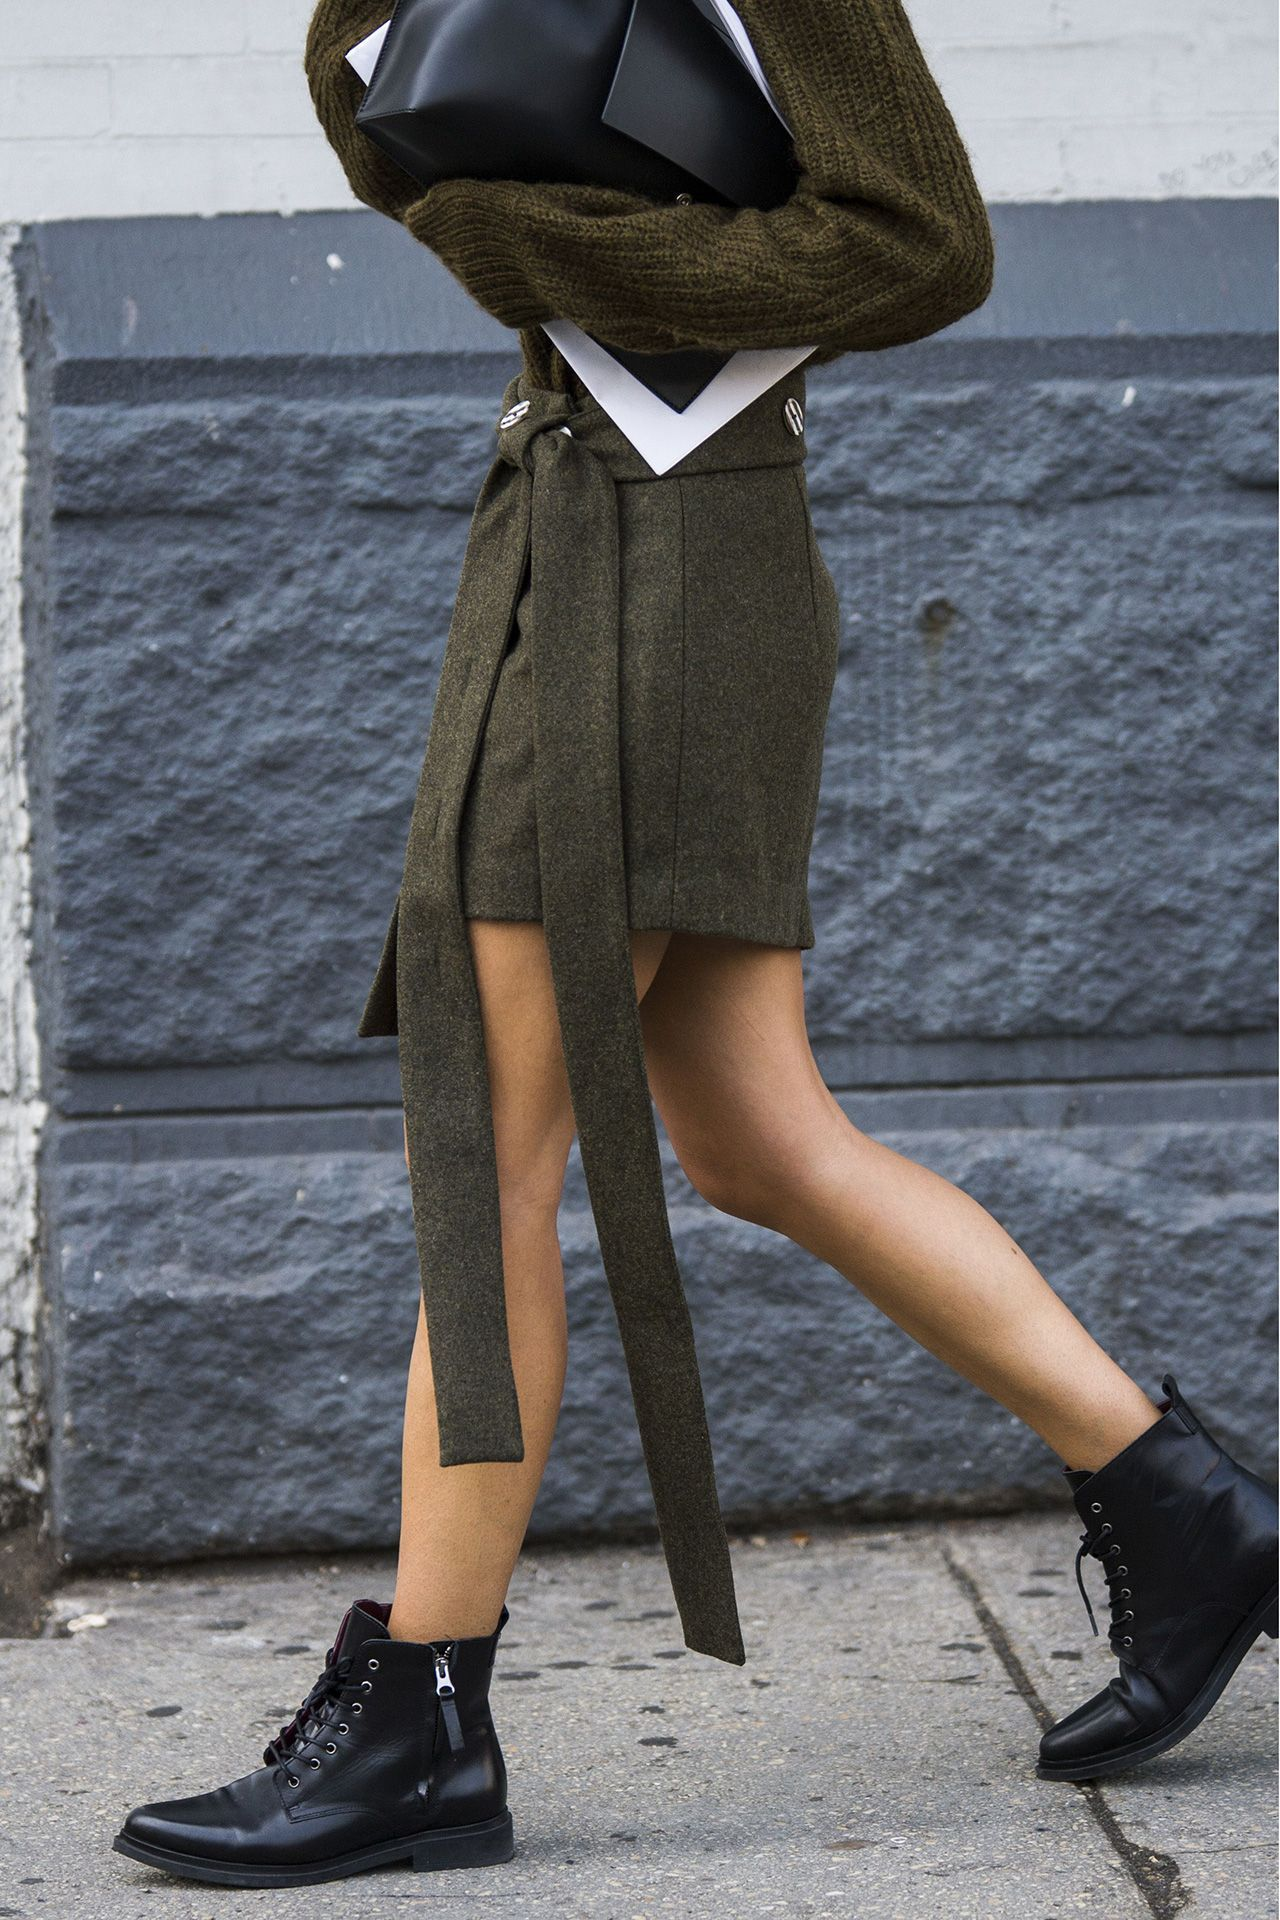 Kaia Gerber combat boots army inspired style in NYC | Chiko